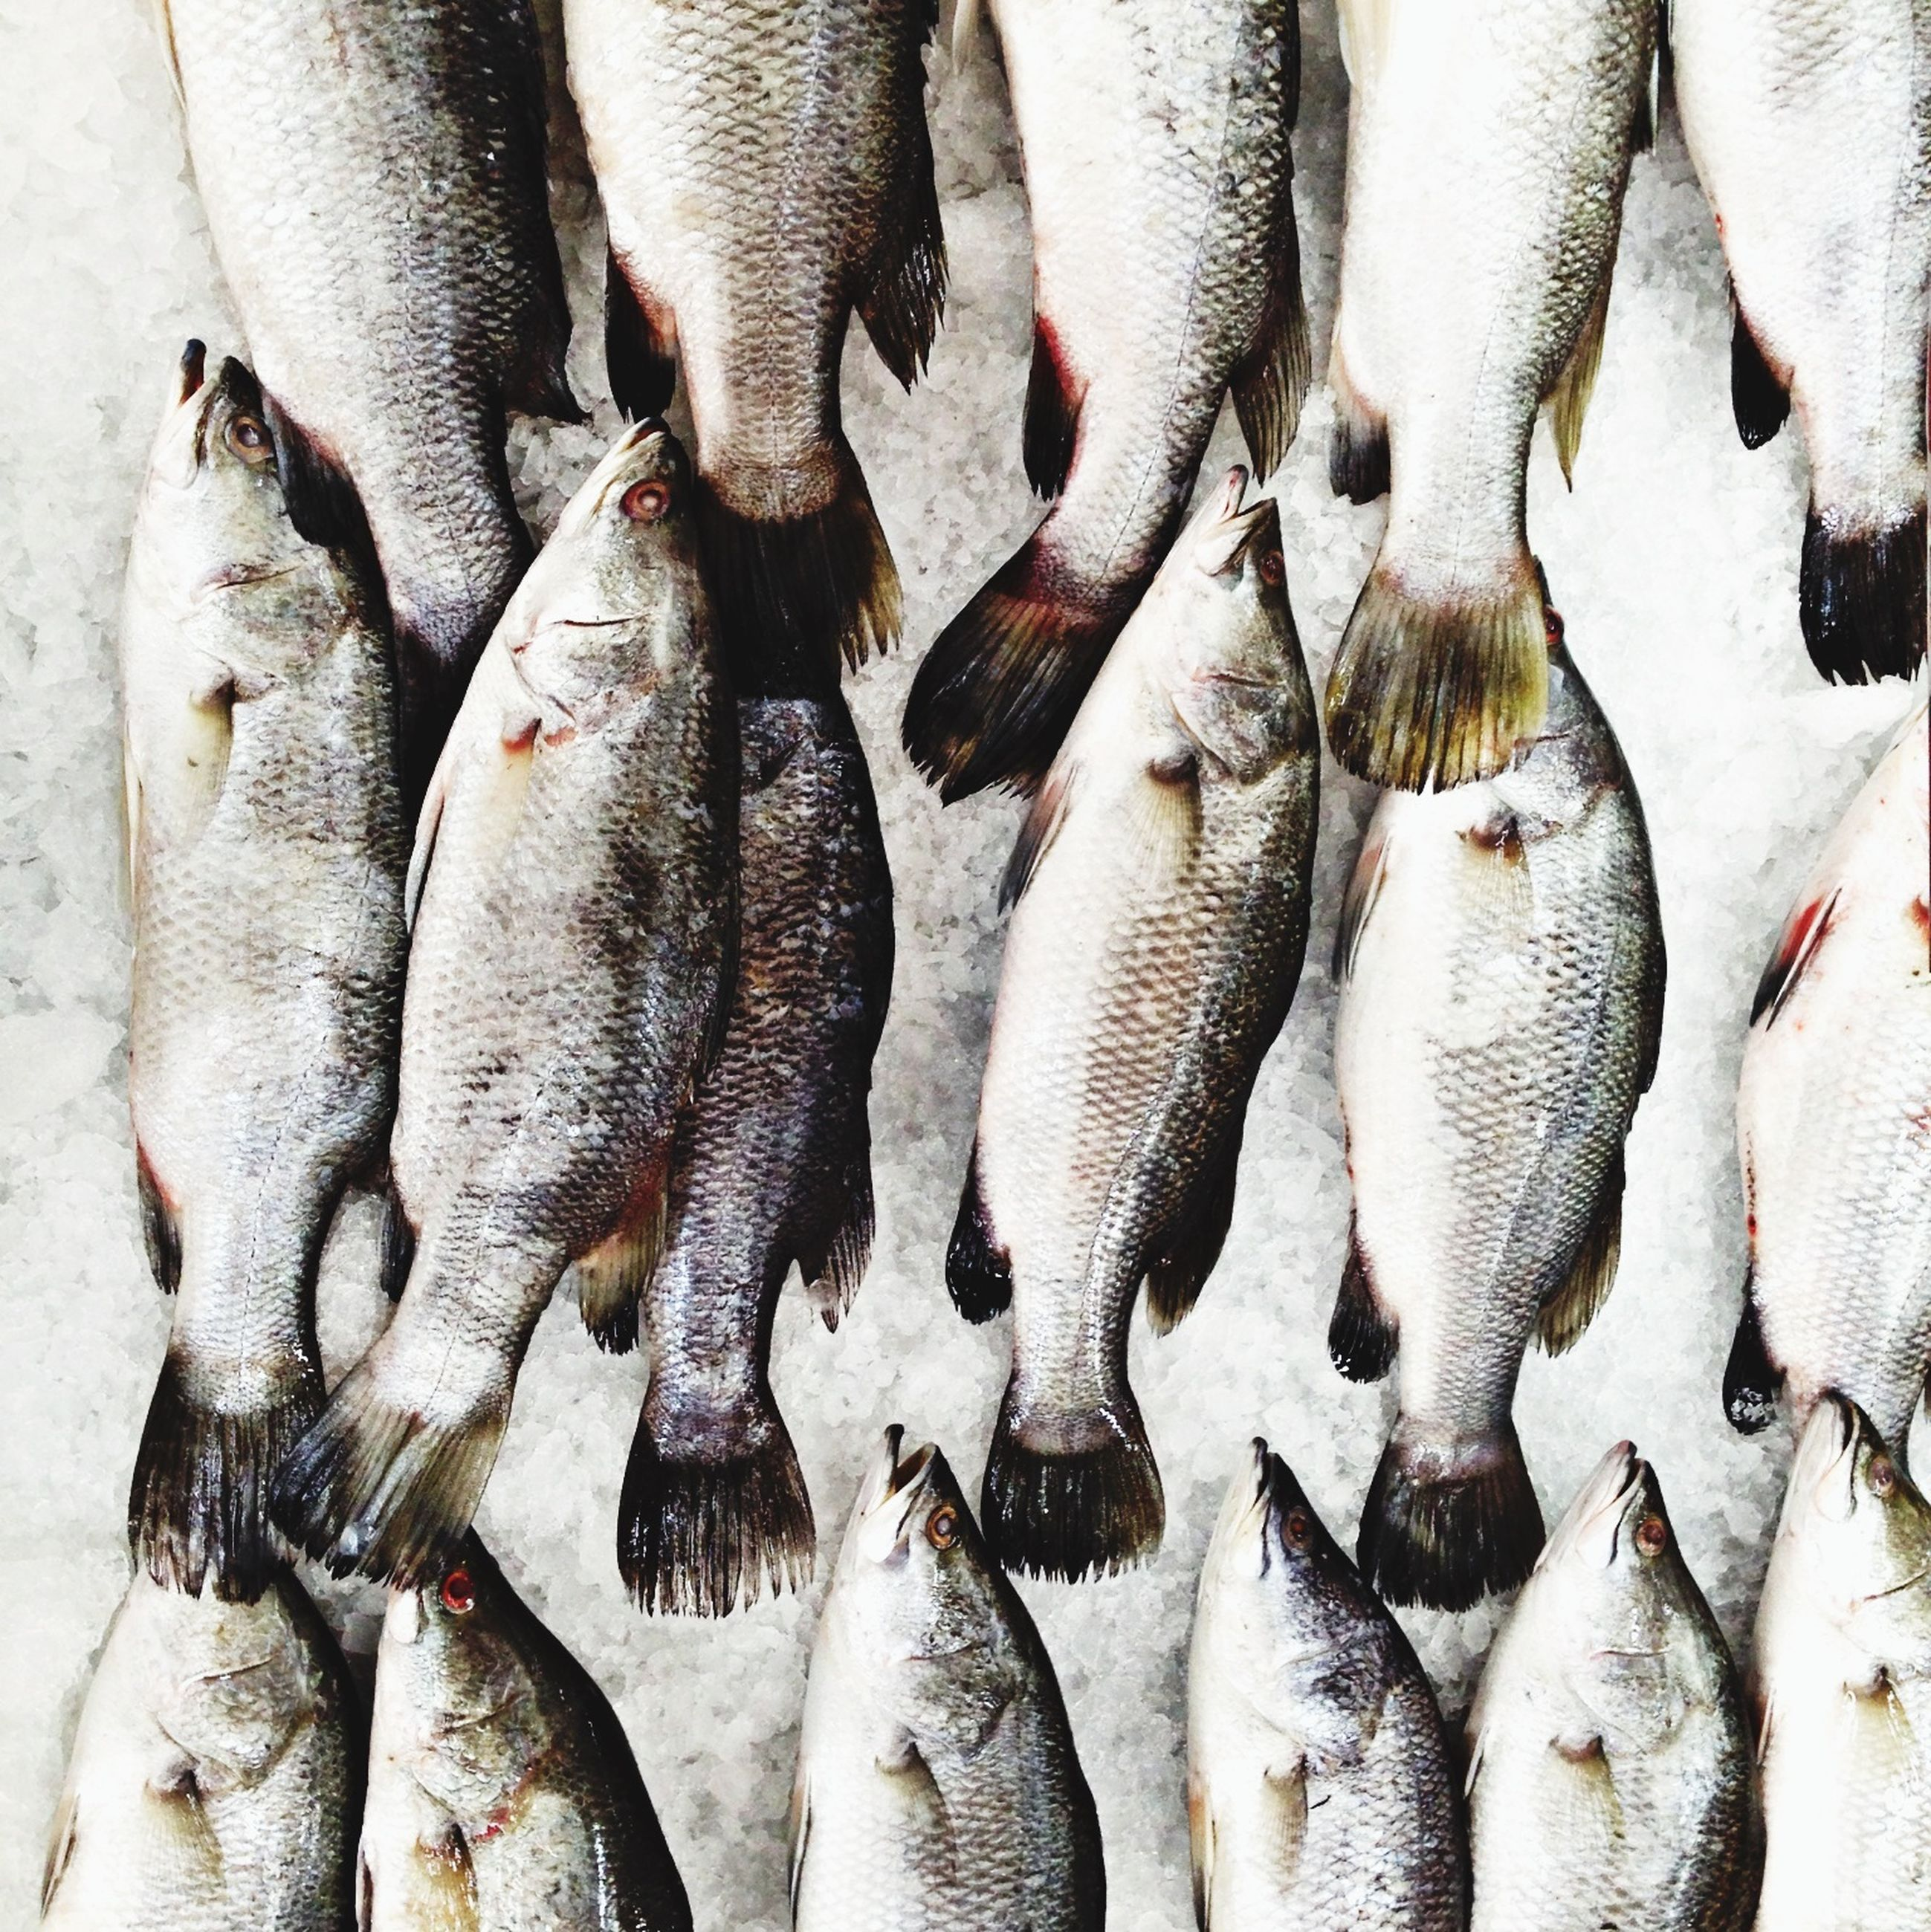 fish, dead animal, seafood, food and drink, for sale, abundance, healthy eating, animal themes, food, retail, market, market stall, raw food, large group of objects, high angle view, fish market, fishing industry, variation, freshness